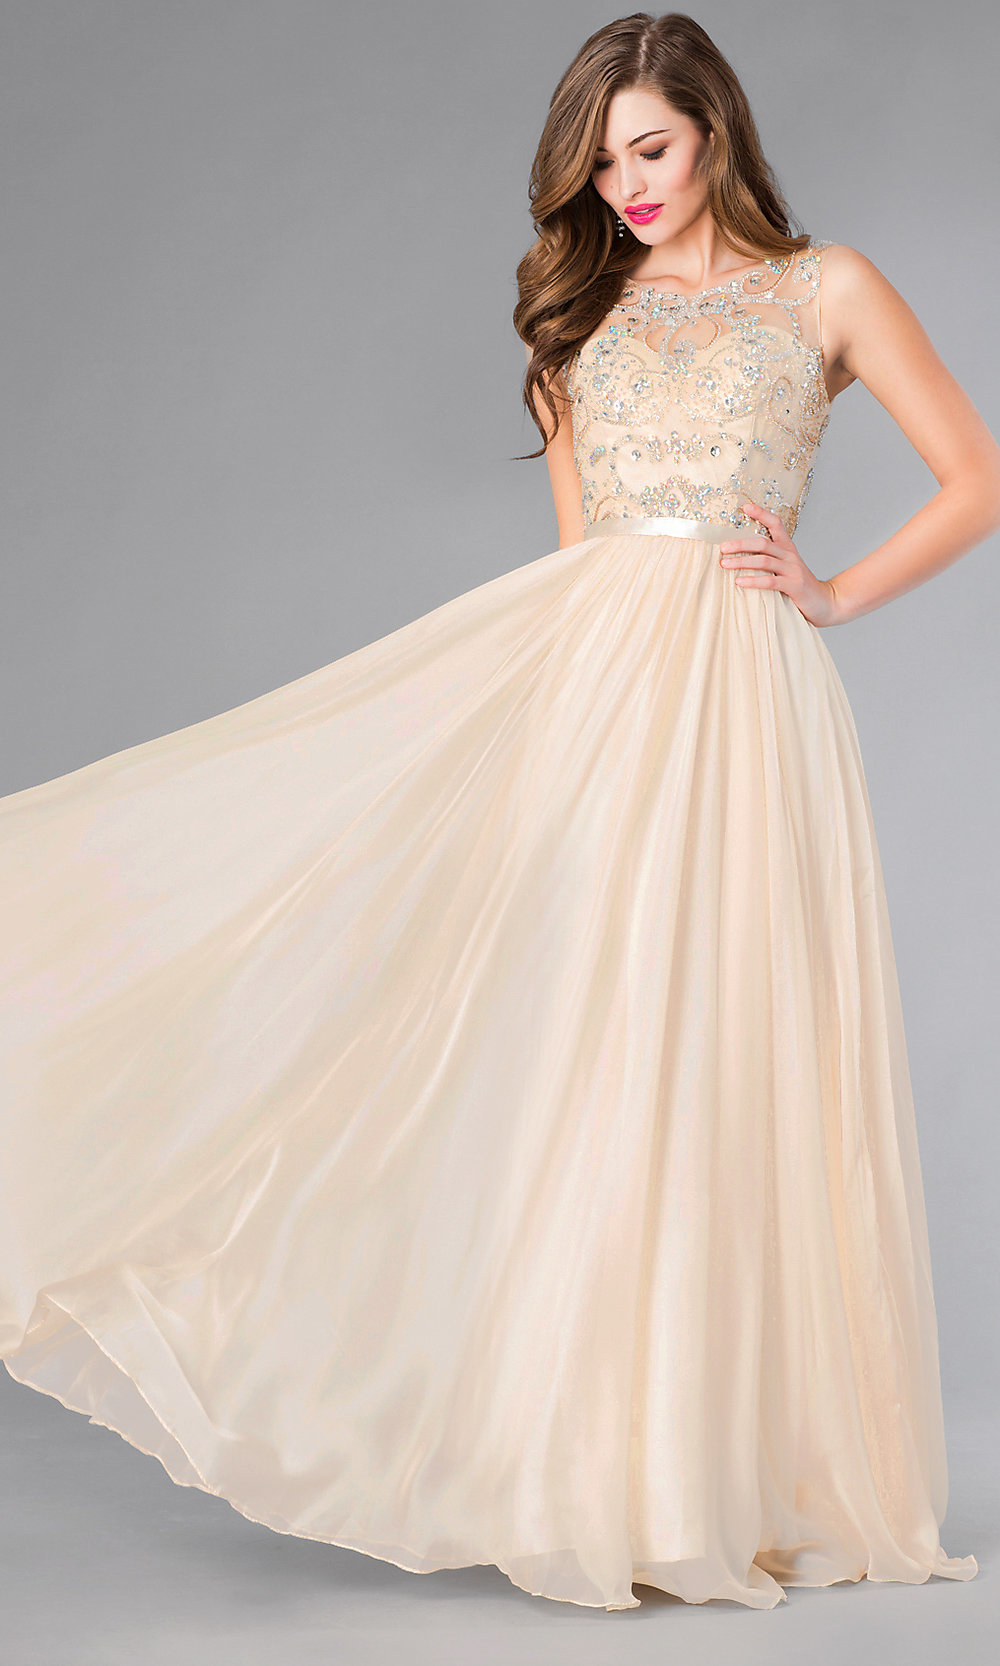 Long Sleeveless Prom Dress, Jeweled Evening Gown